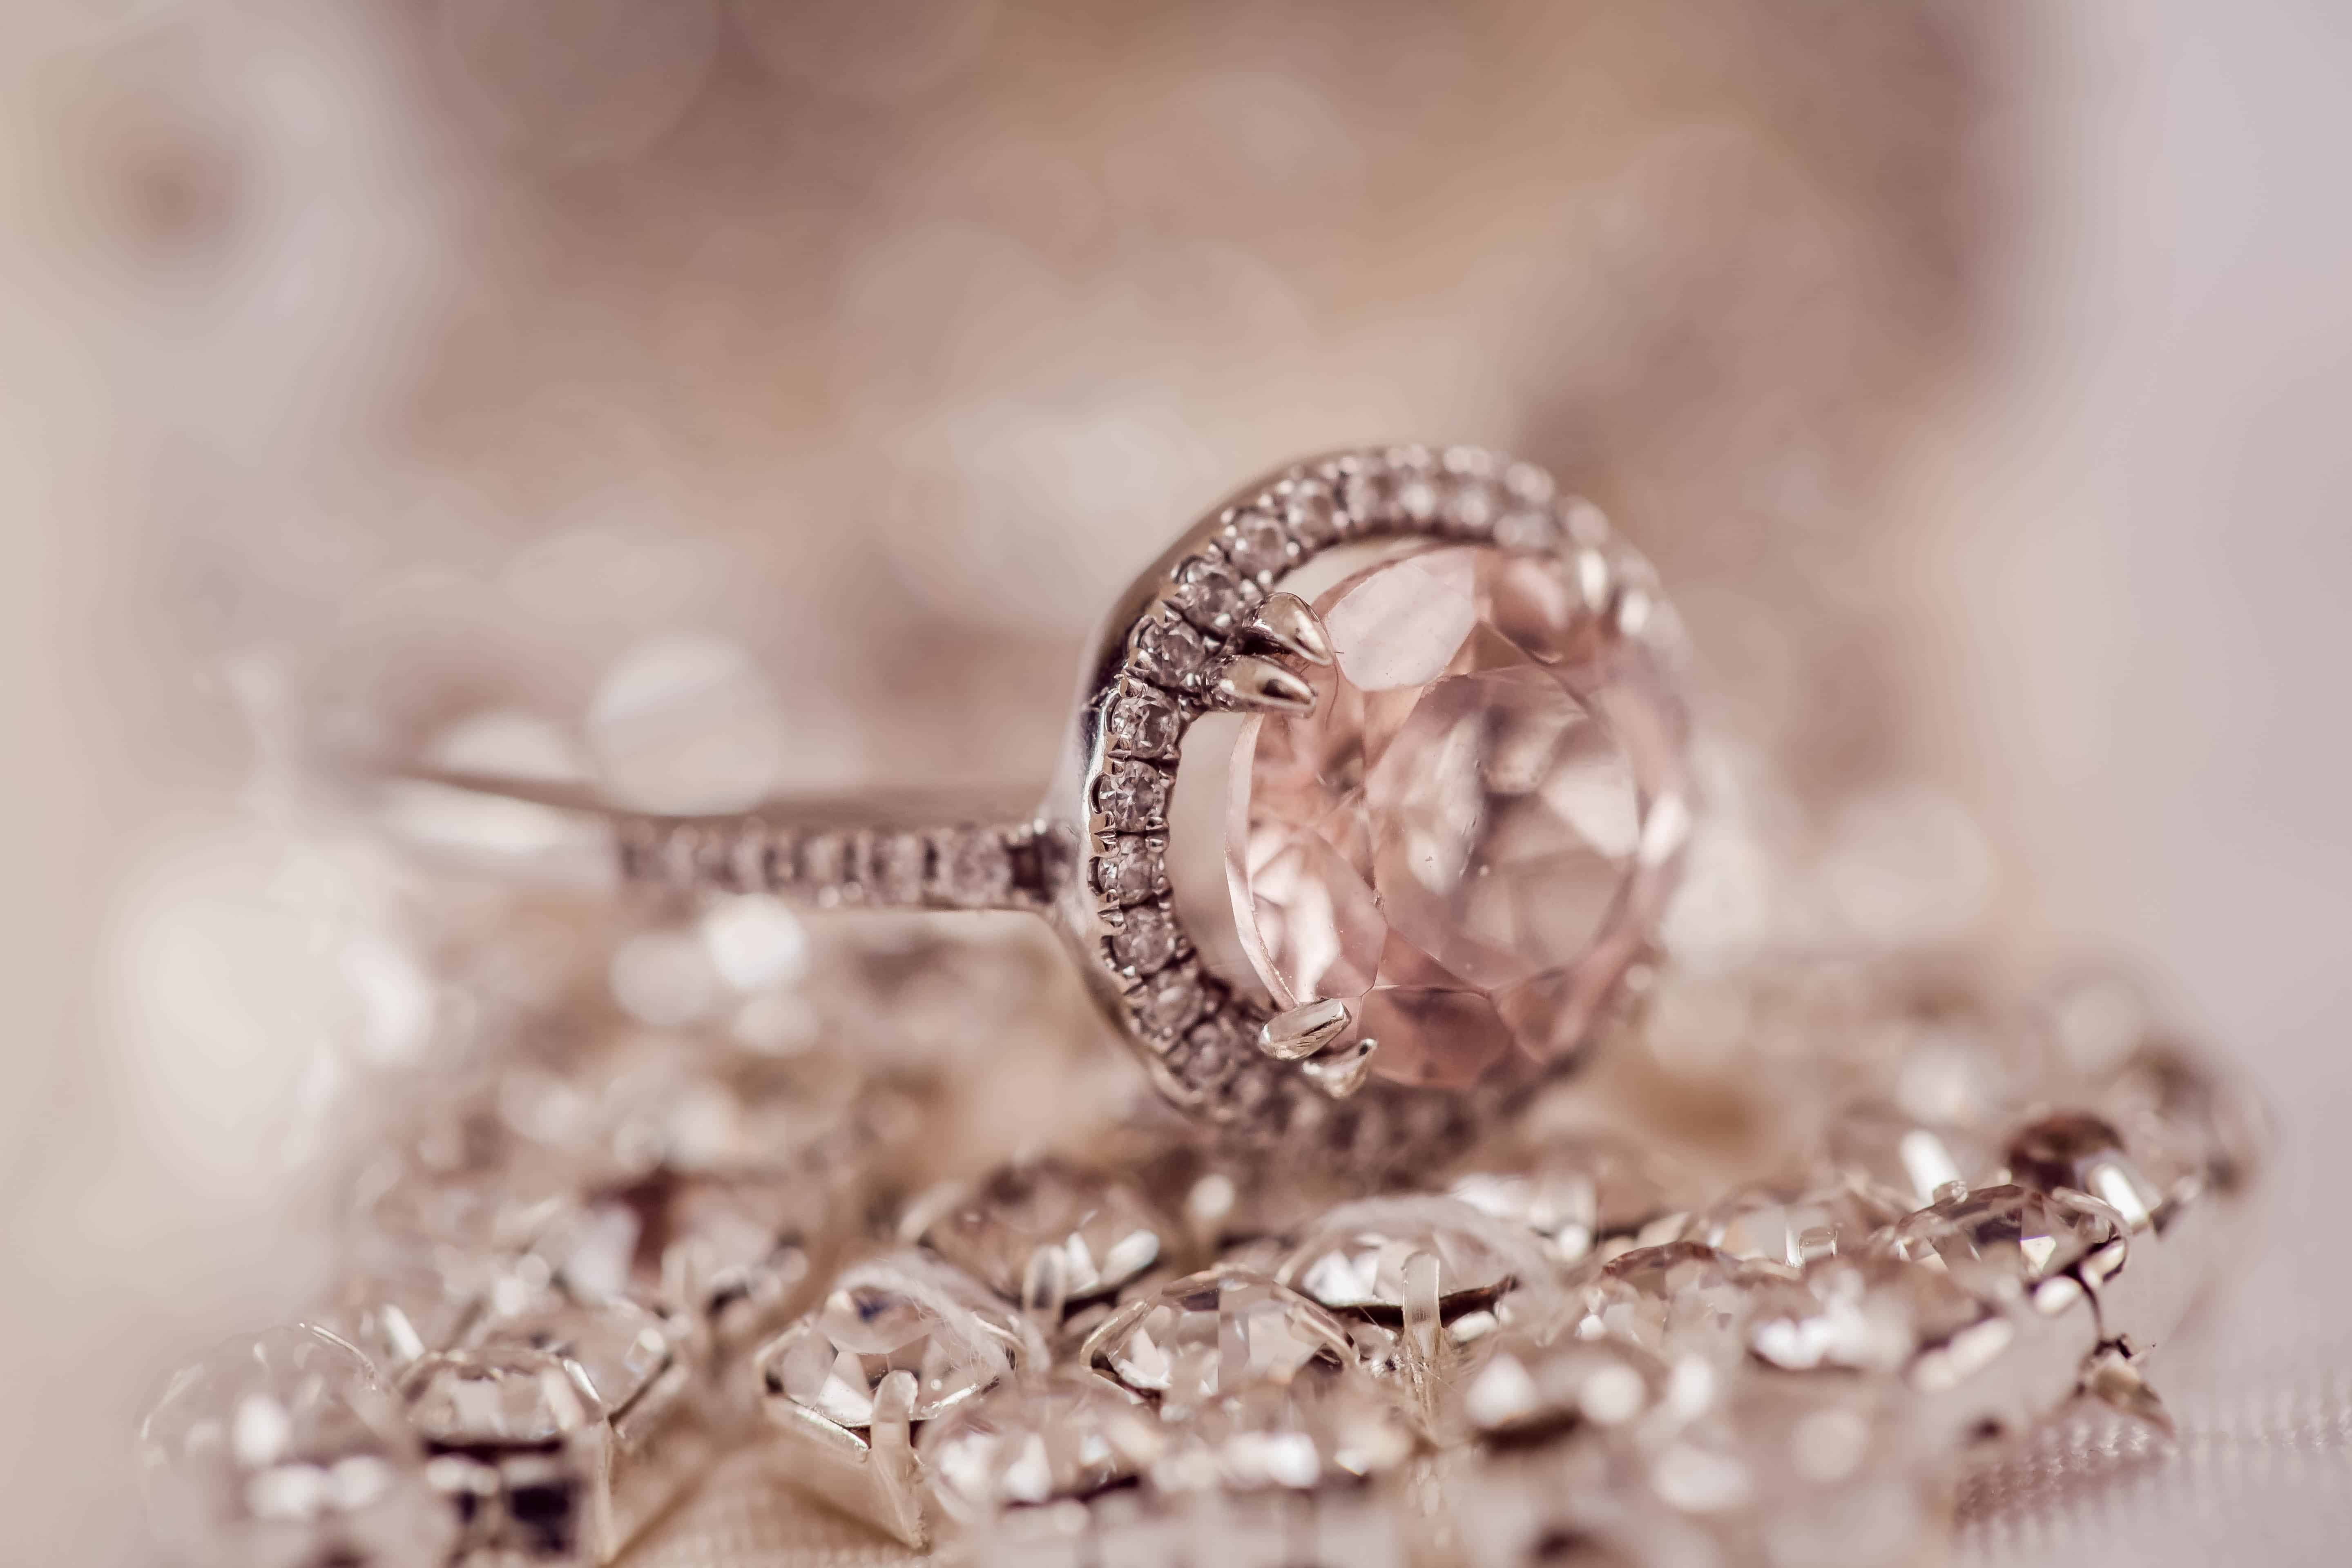 How To Clean Your Wedding Ring Without A Trip To The Jewelry